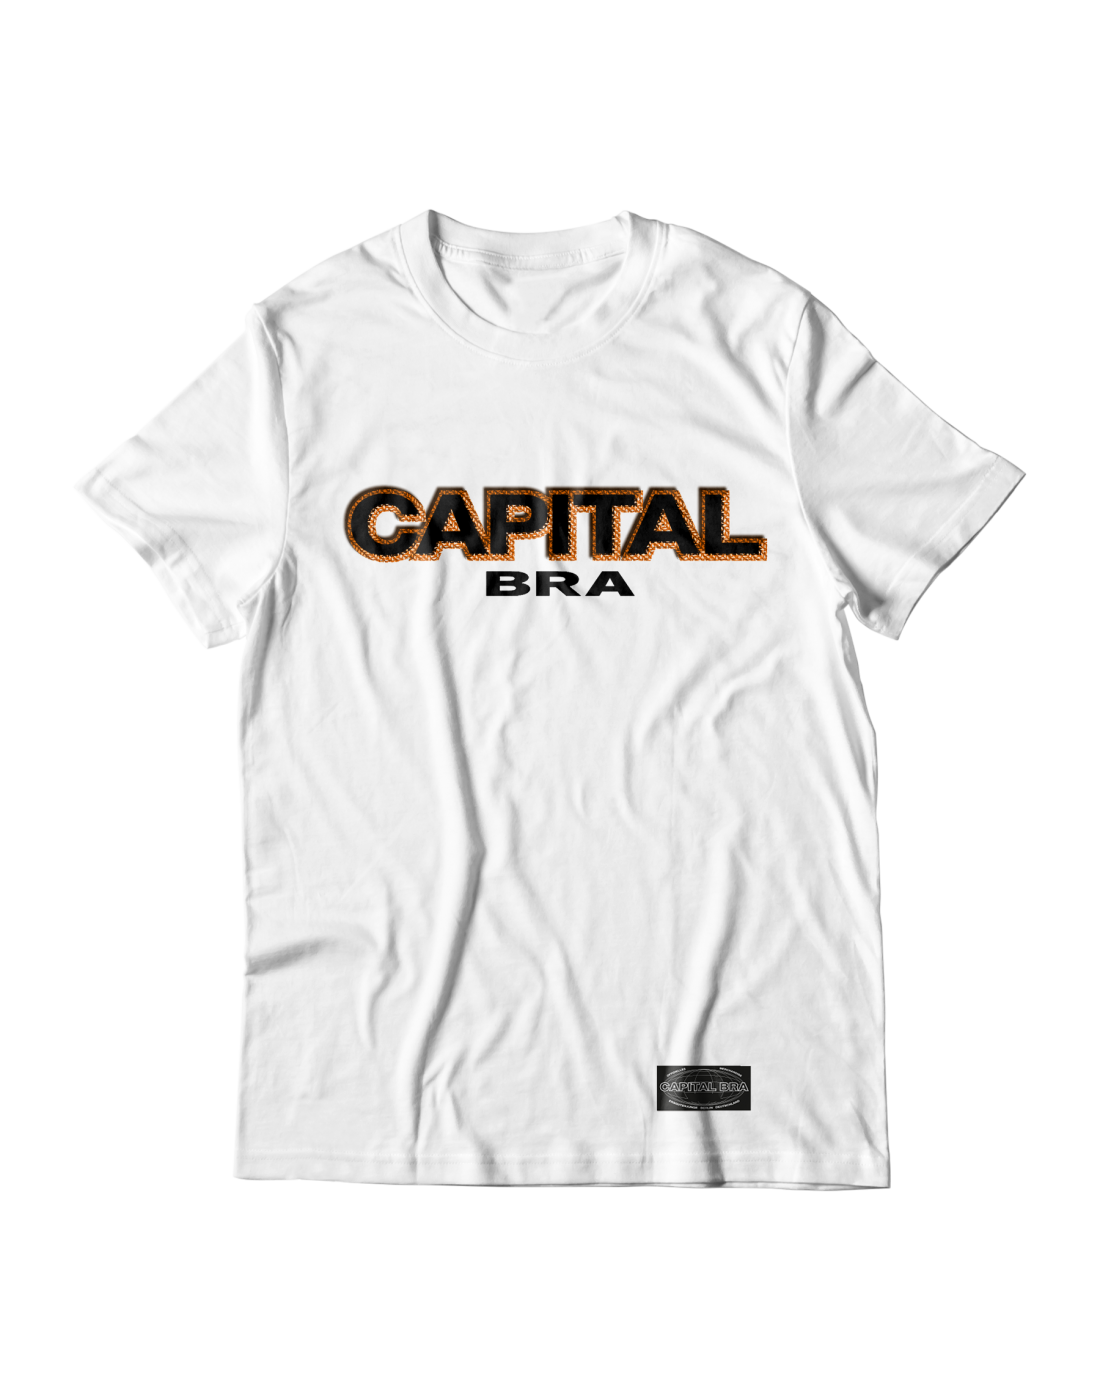 Capital Bra Shirt BG